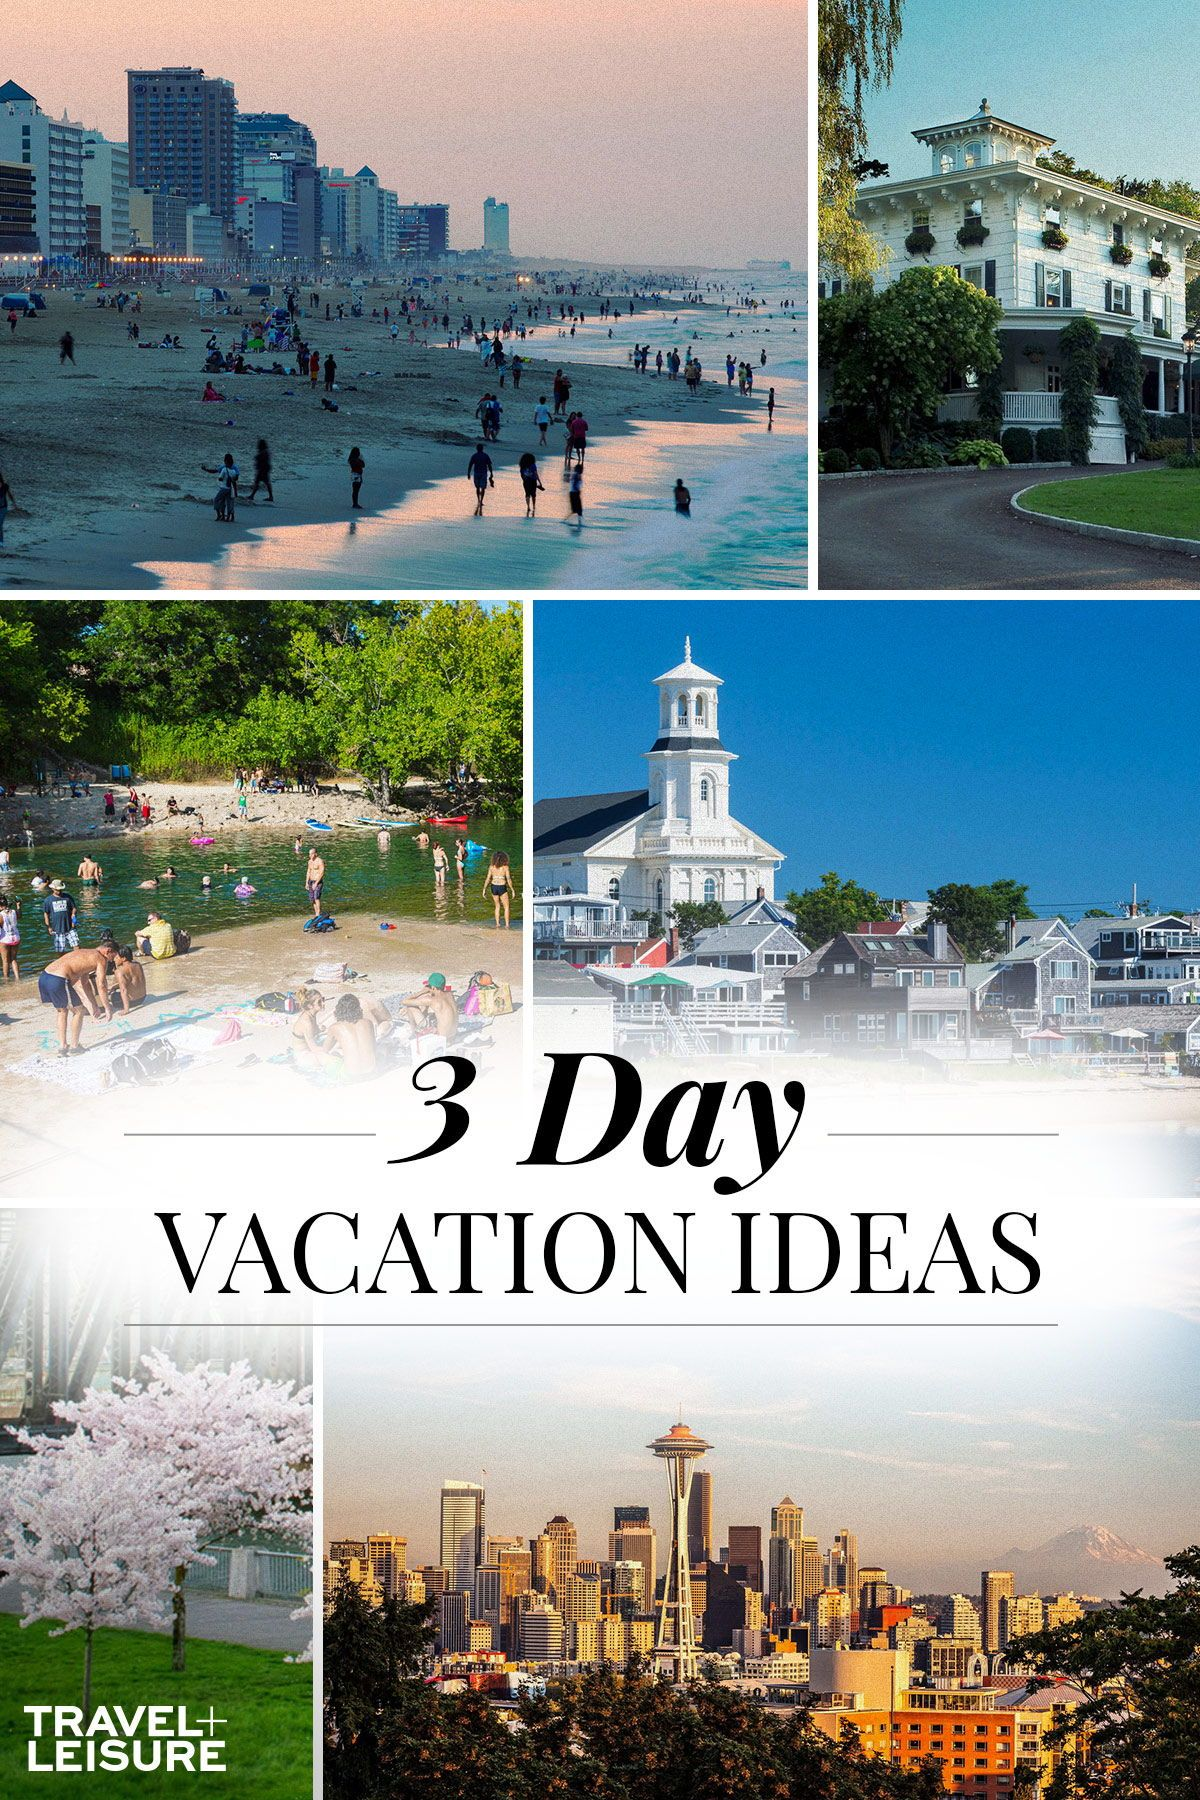 3 Day Vacation Ideas Weekend Vacations Weekend Getaways For Couples Best Weekend Getaways